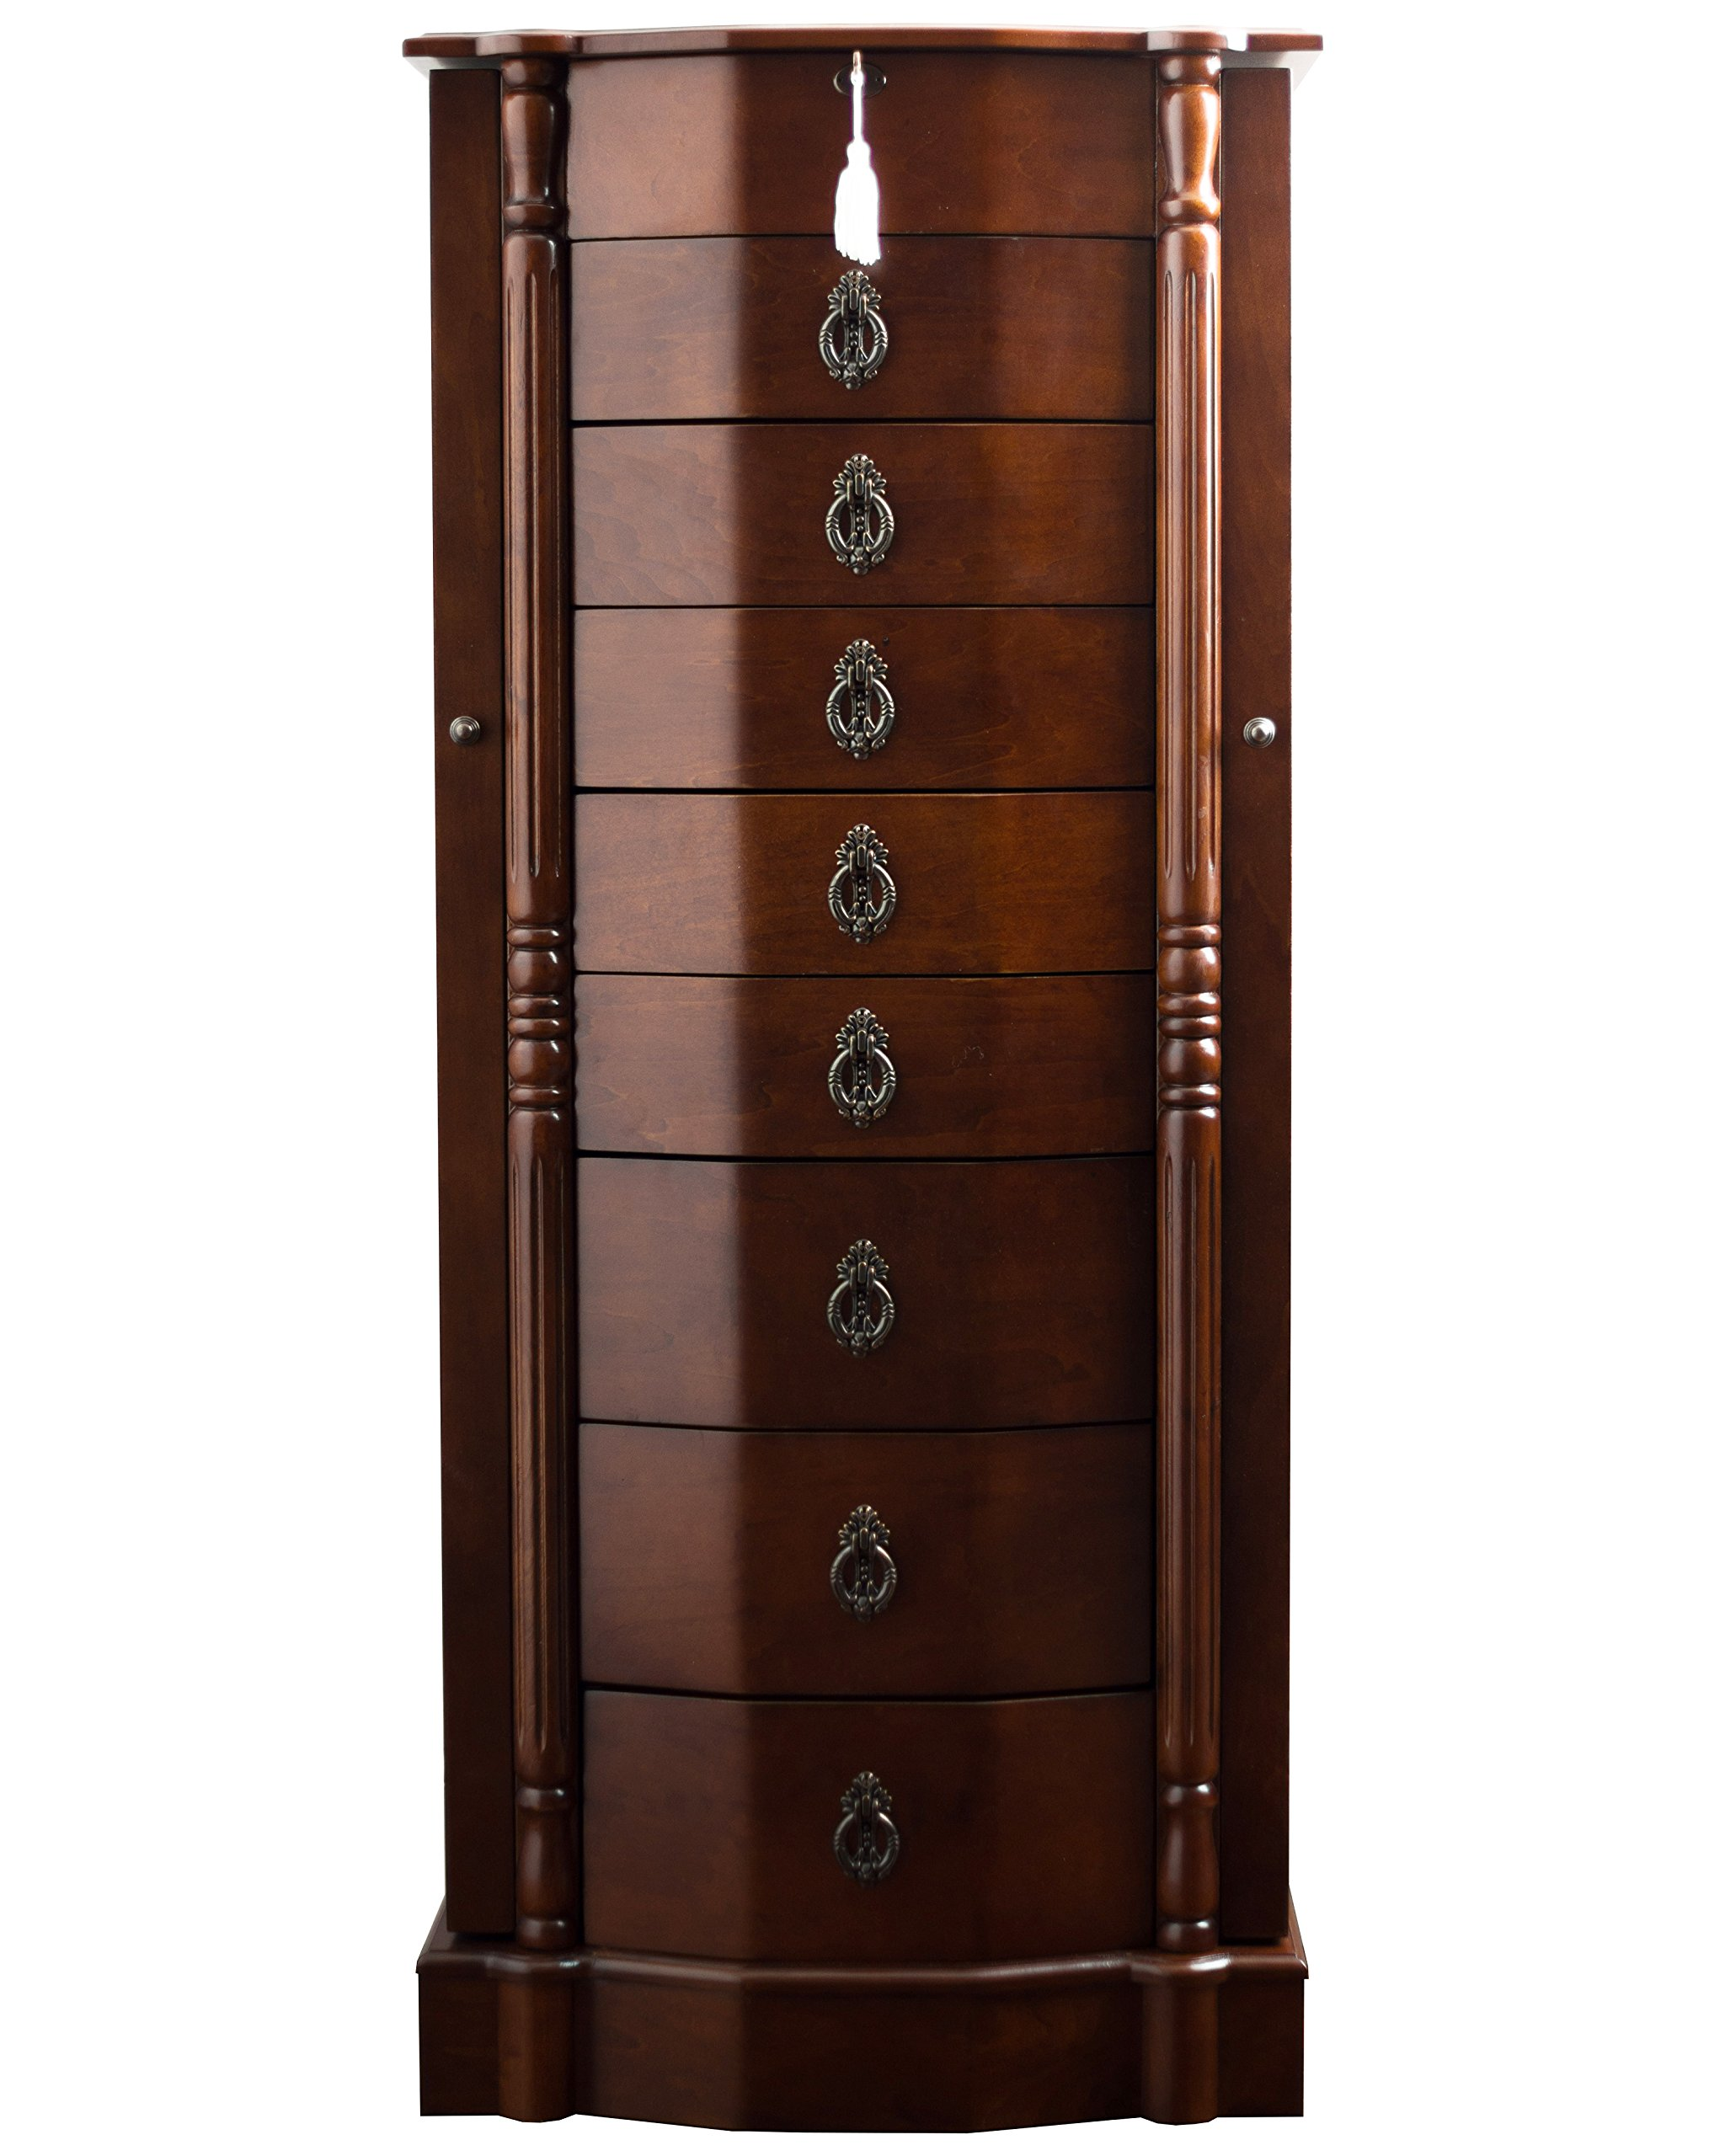 Hives and Honey Sheffield Standing Armoire Jewelry Cabinet, walnut by Hives and Honey